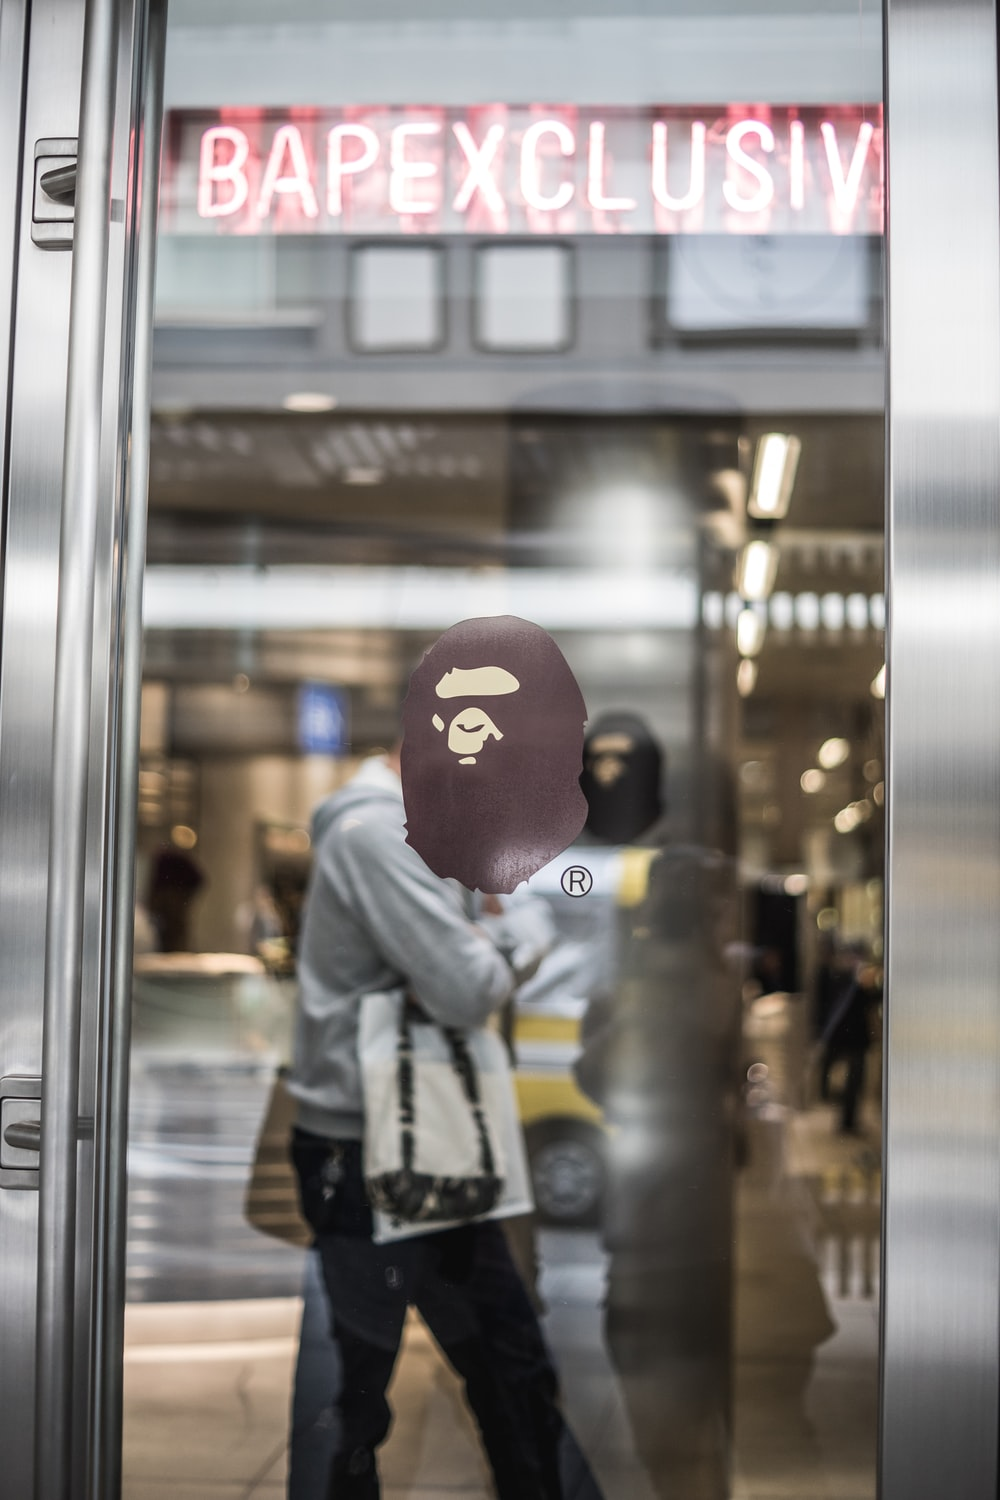 A Bathing Ape decal on glass